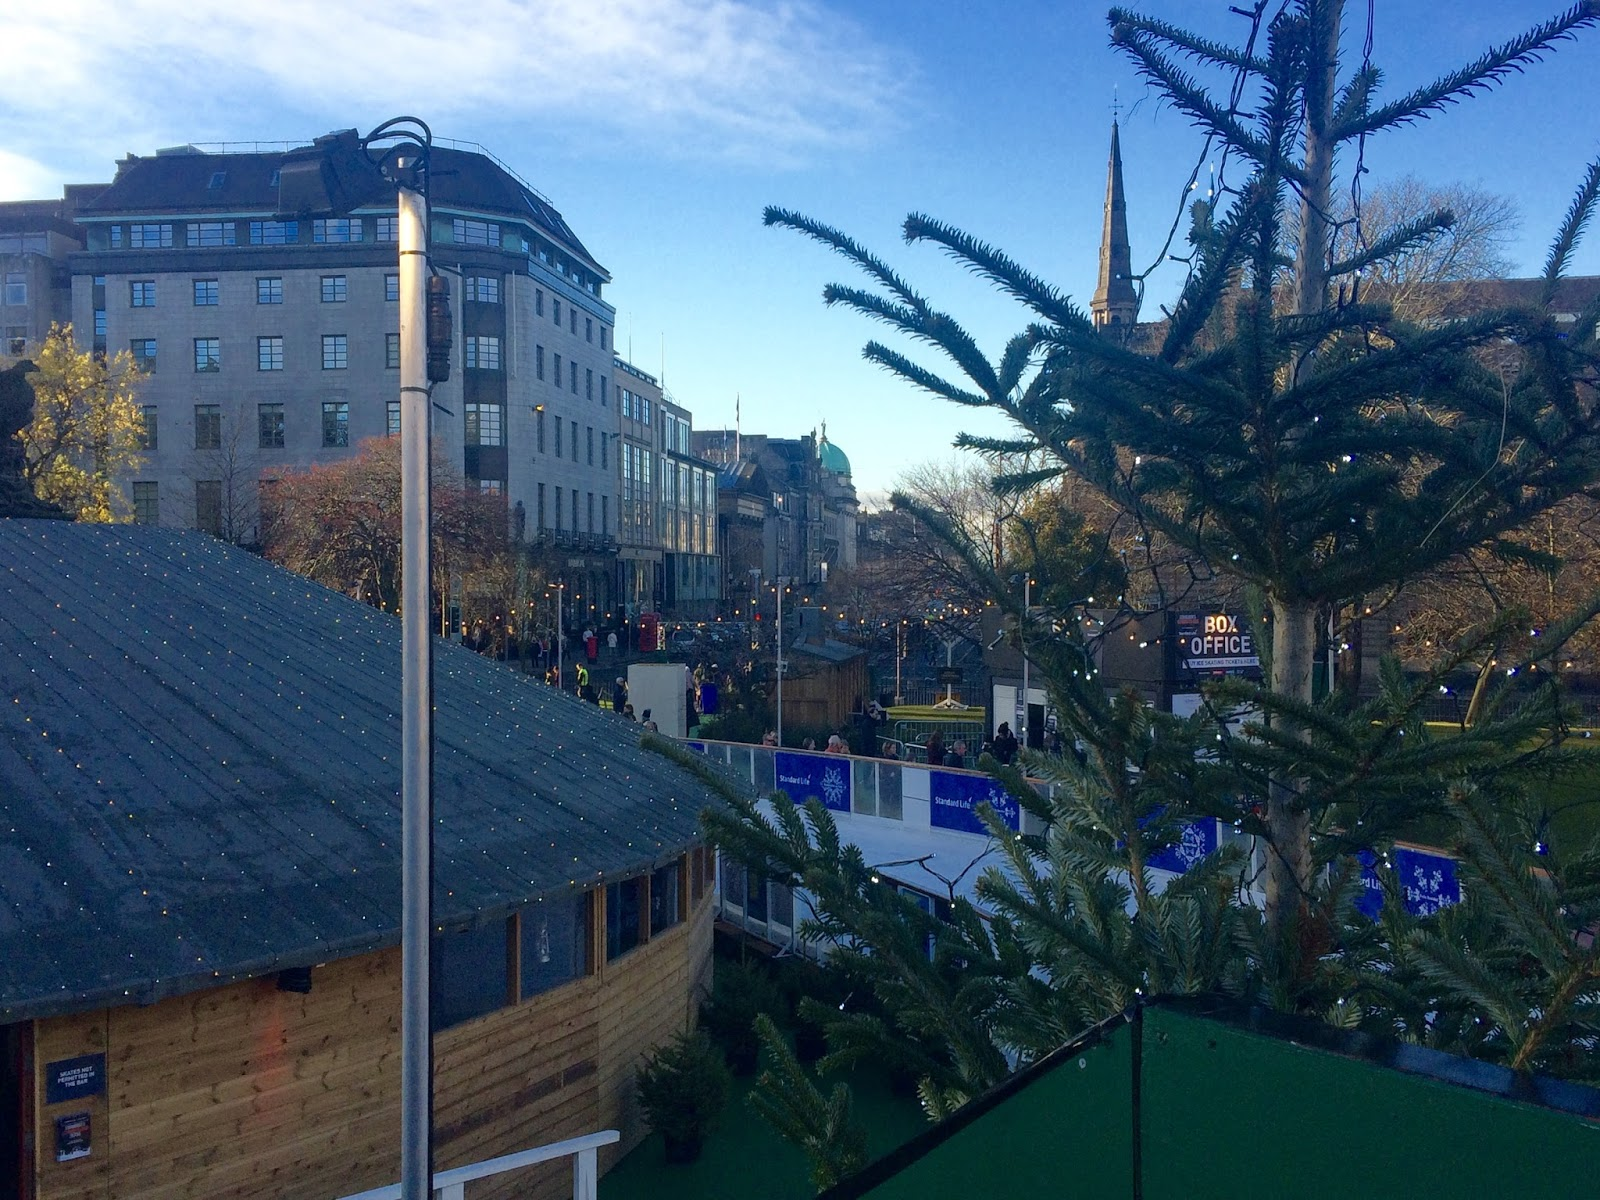 St Andrews Square December 2016